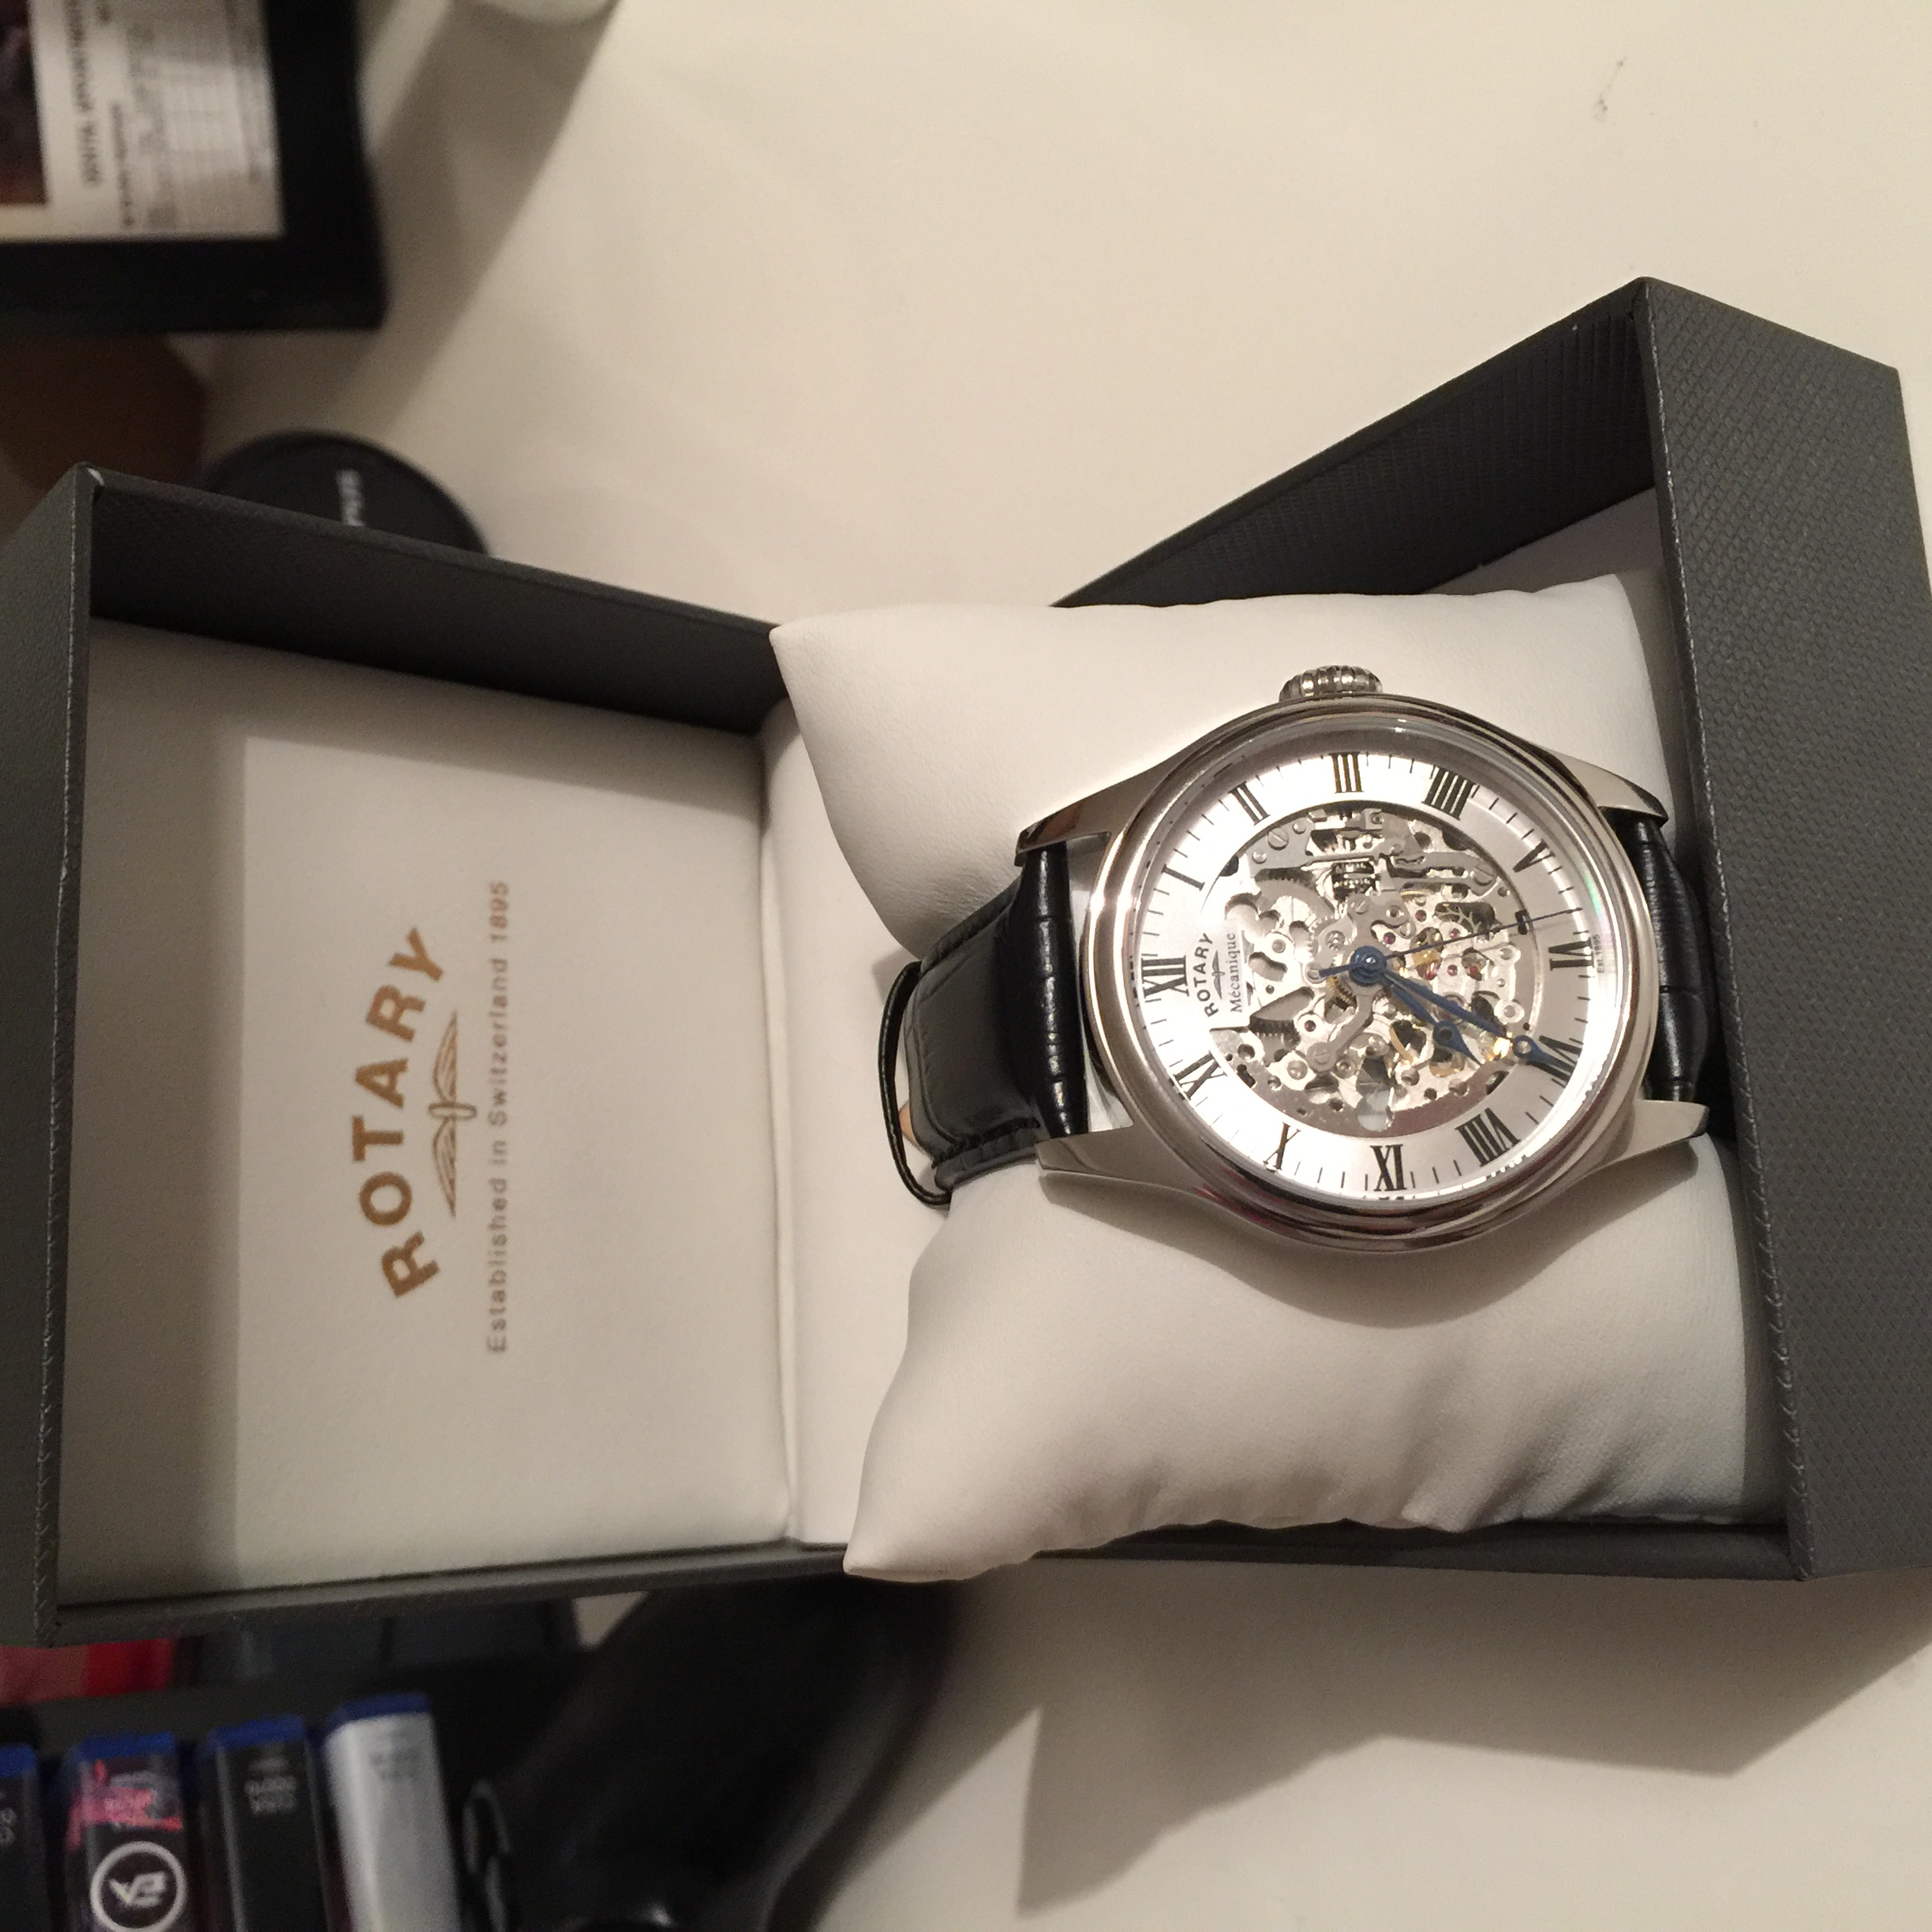 05f0e7e181d8 I saw that the watch was reduced to over 50% off and I thought